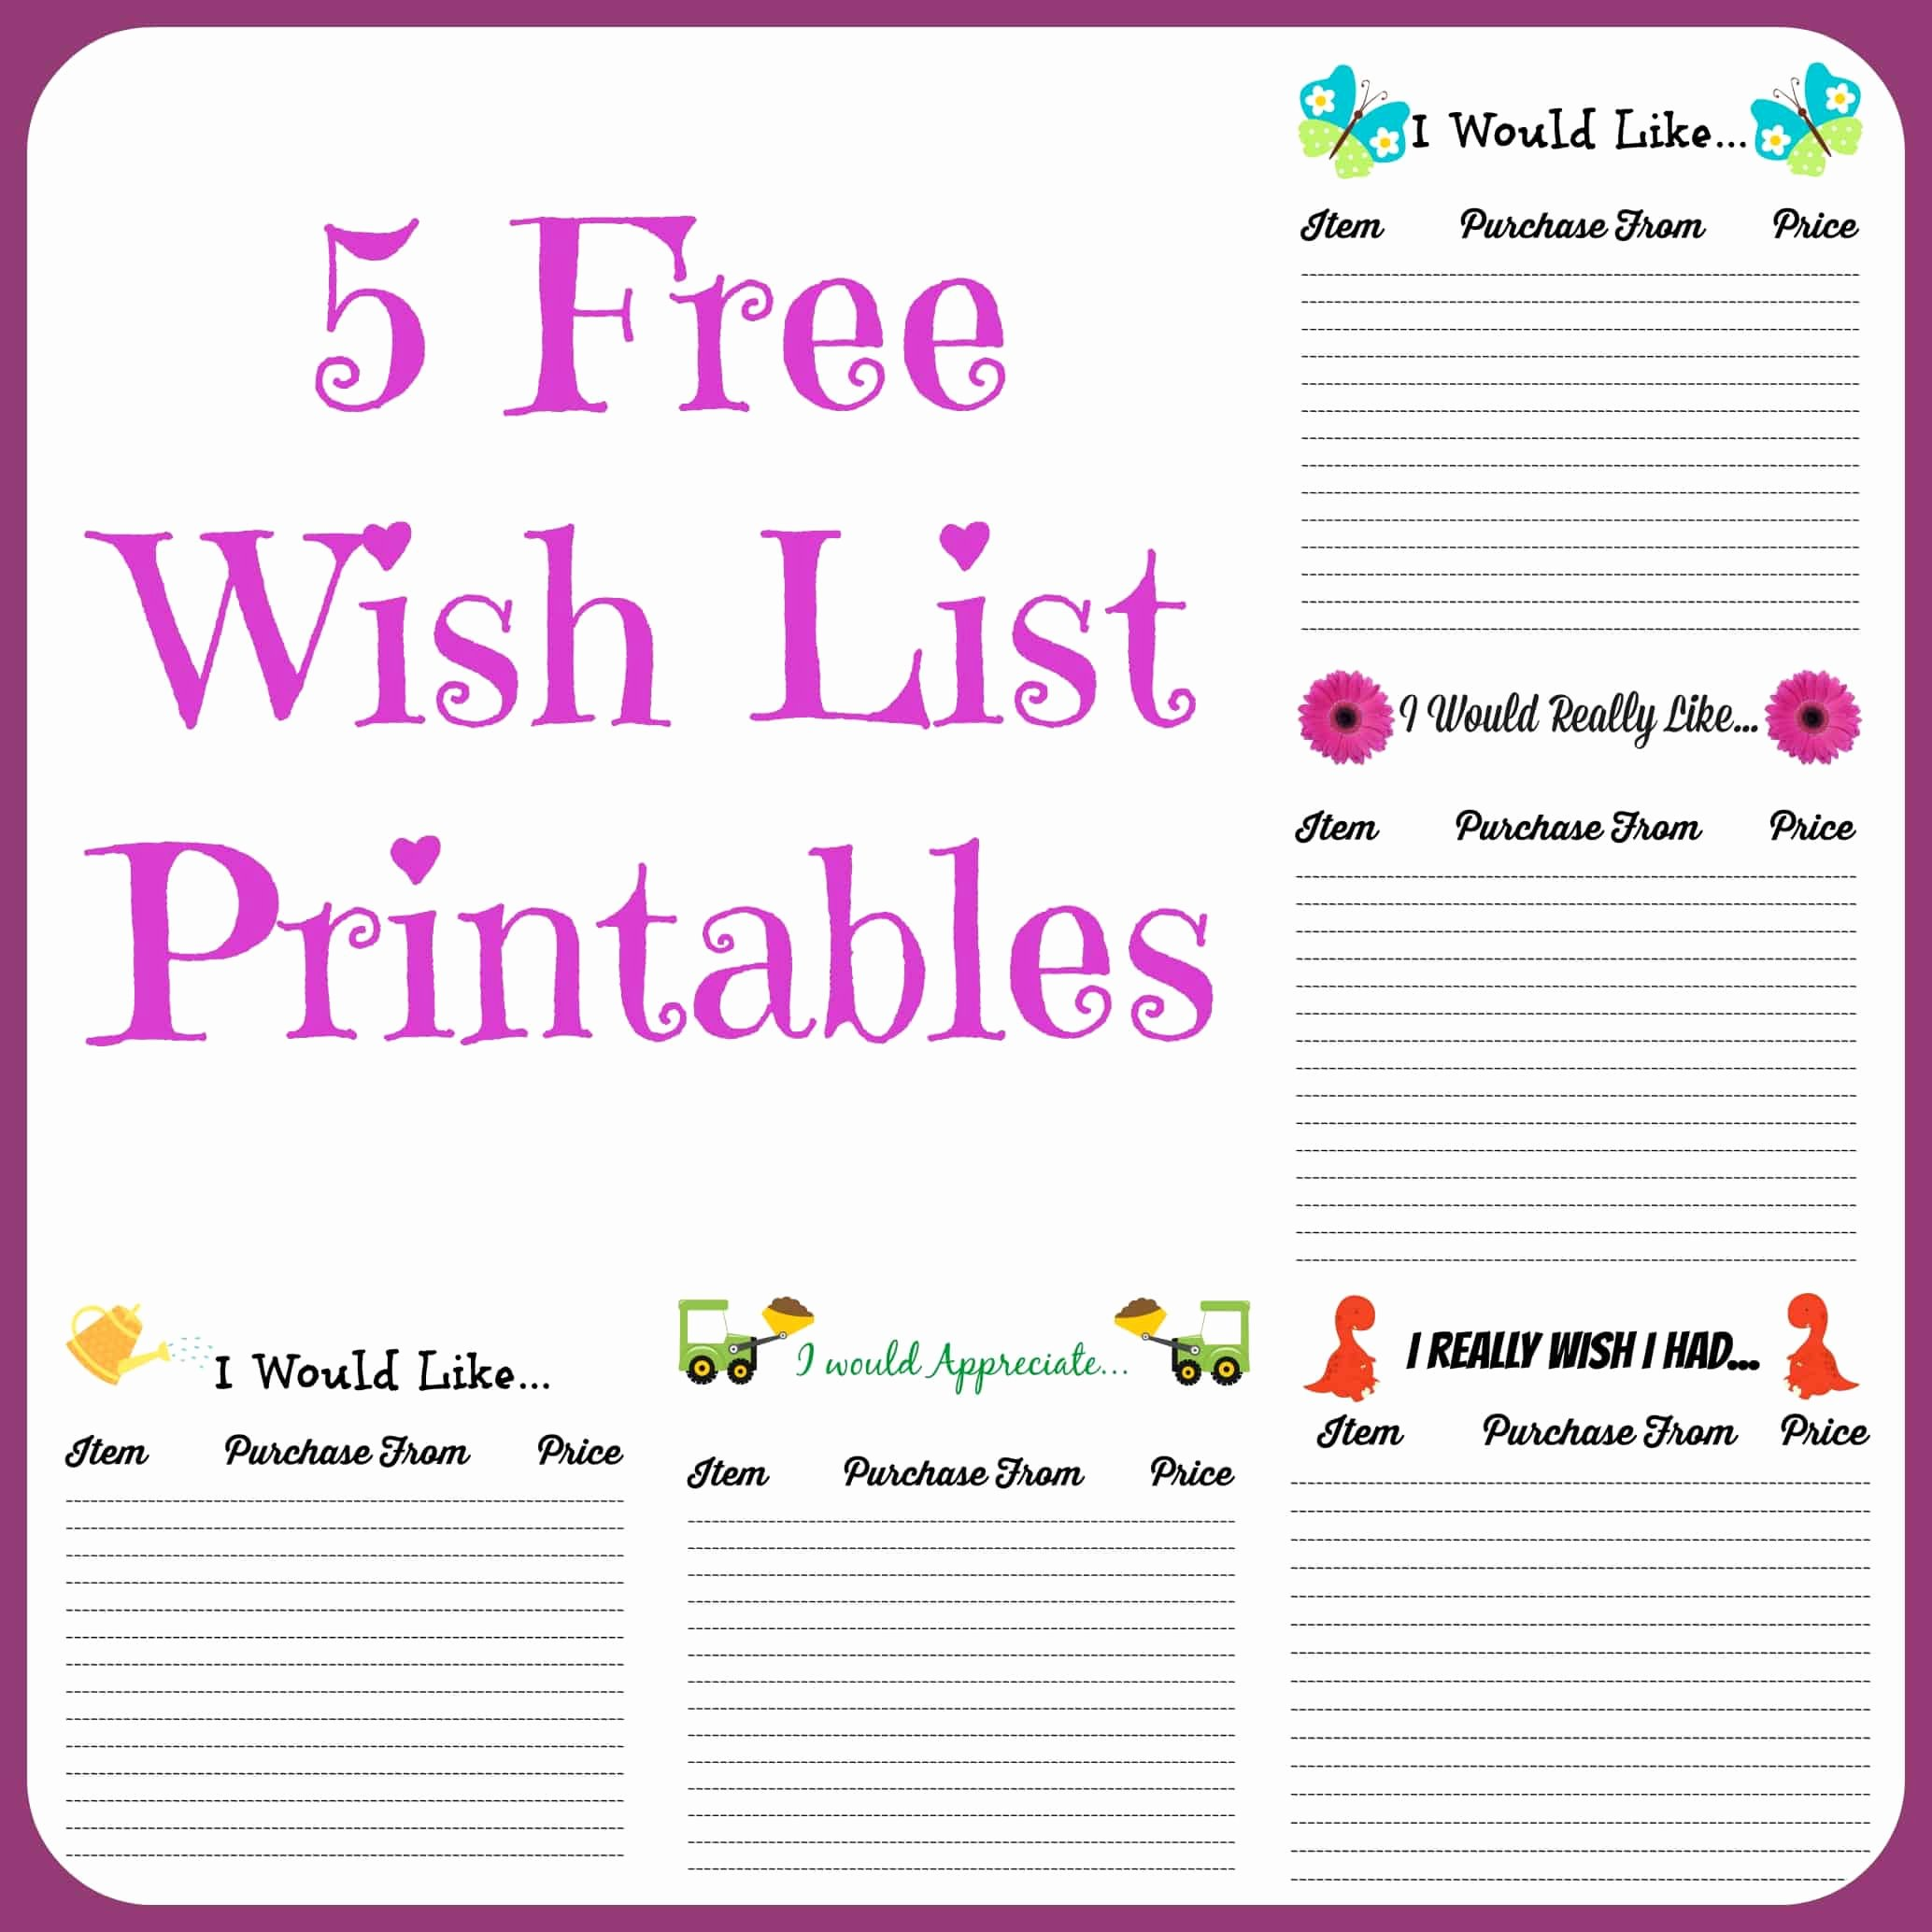 Wish List Template New Free Wish List Printables 5 Designs to Pick From